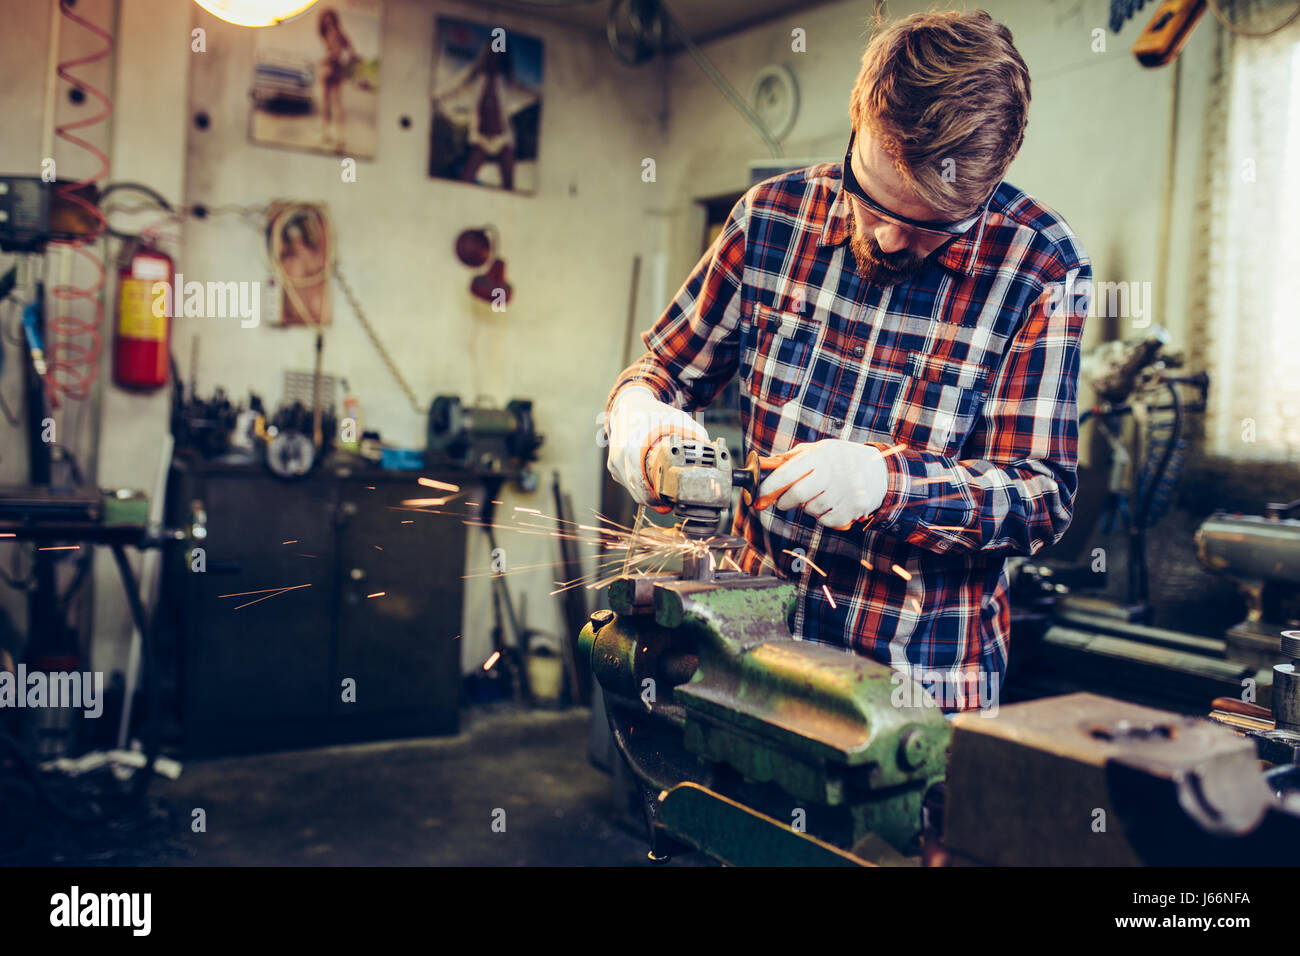 Young manual worker working with grinder - Stock Image